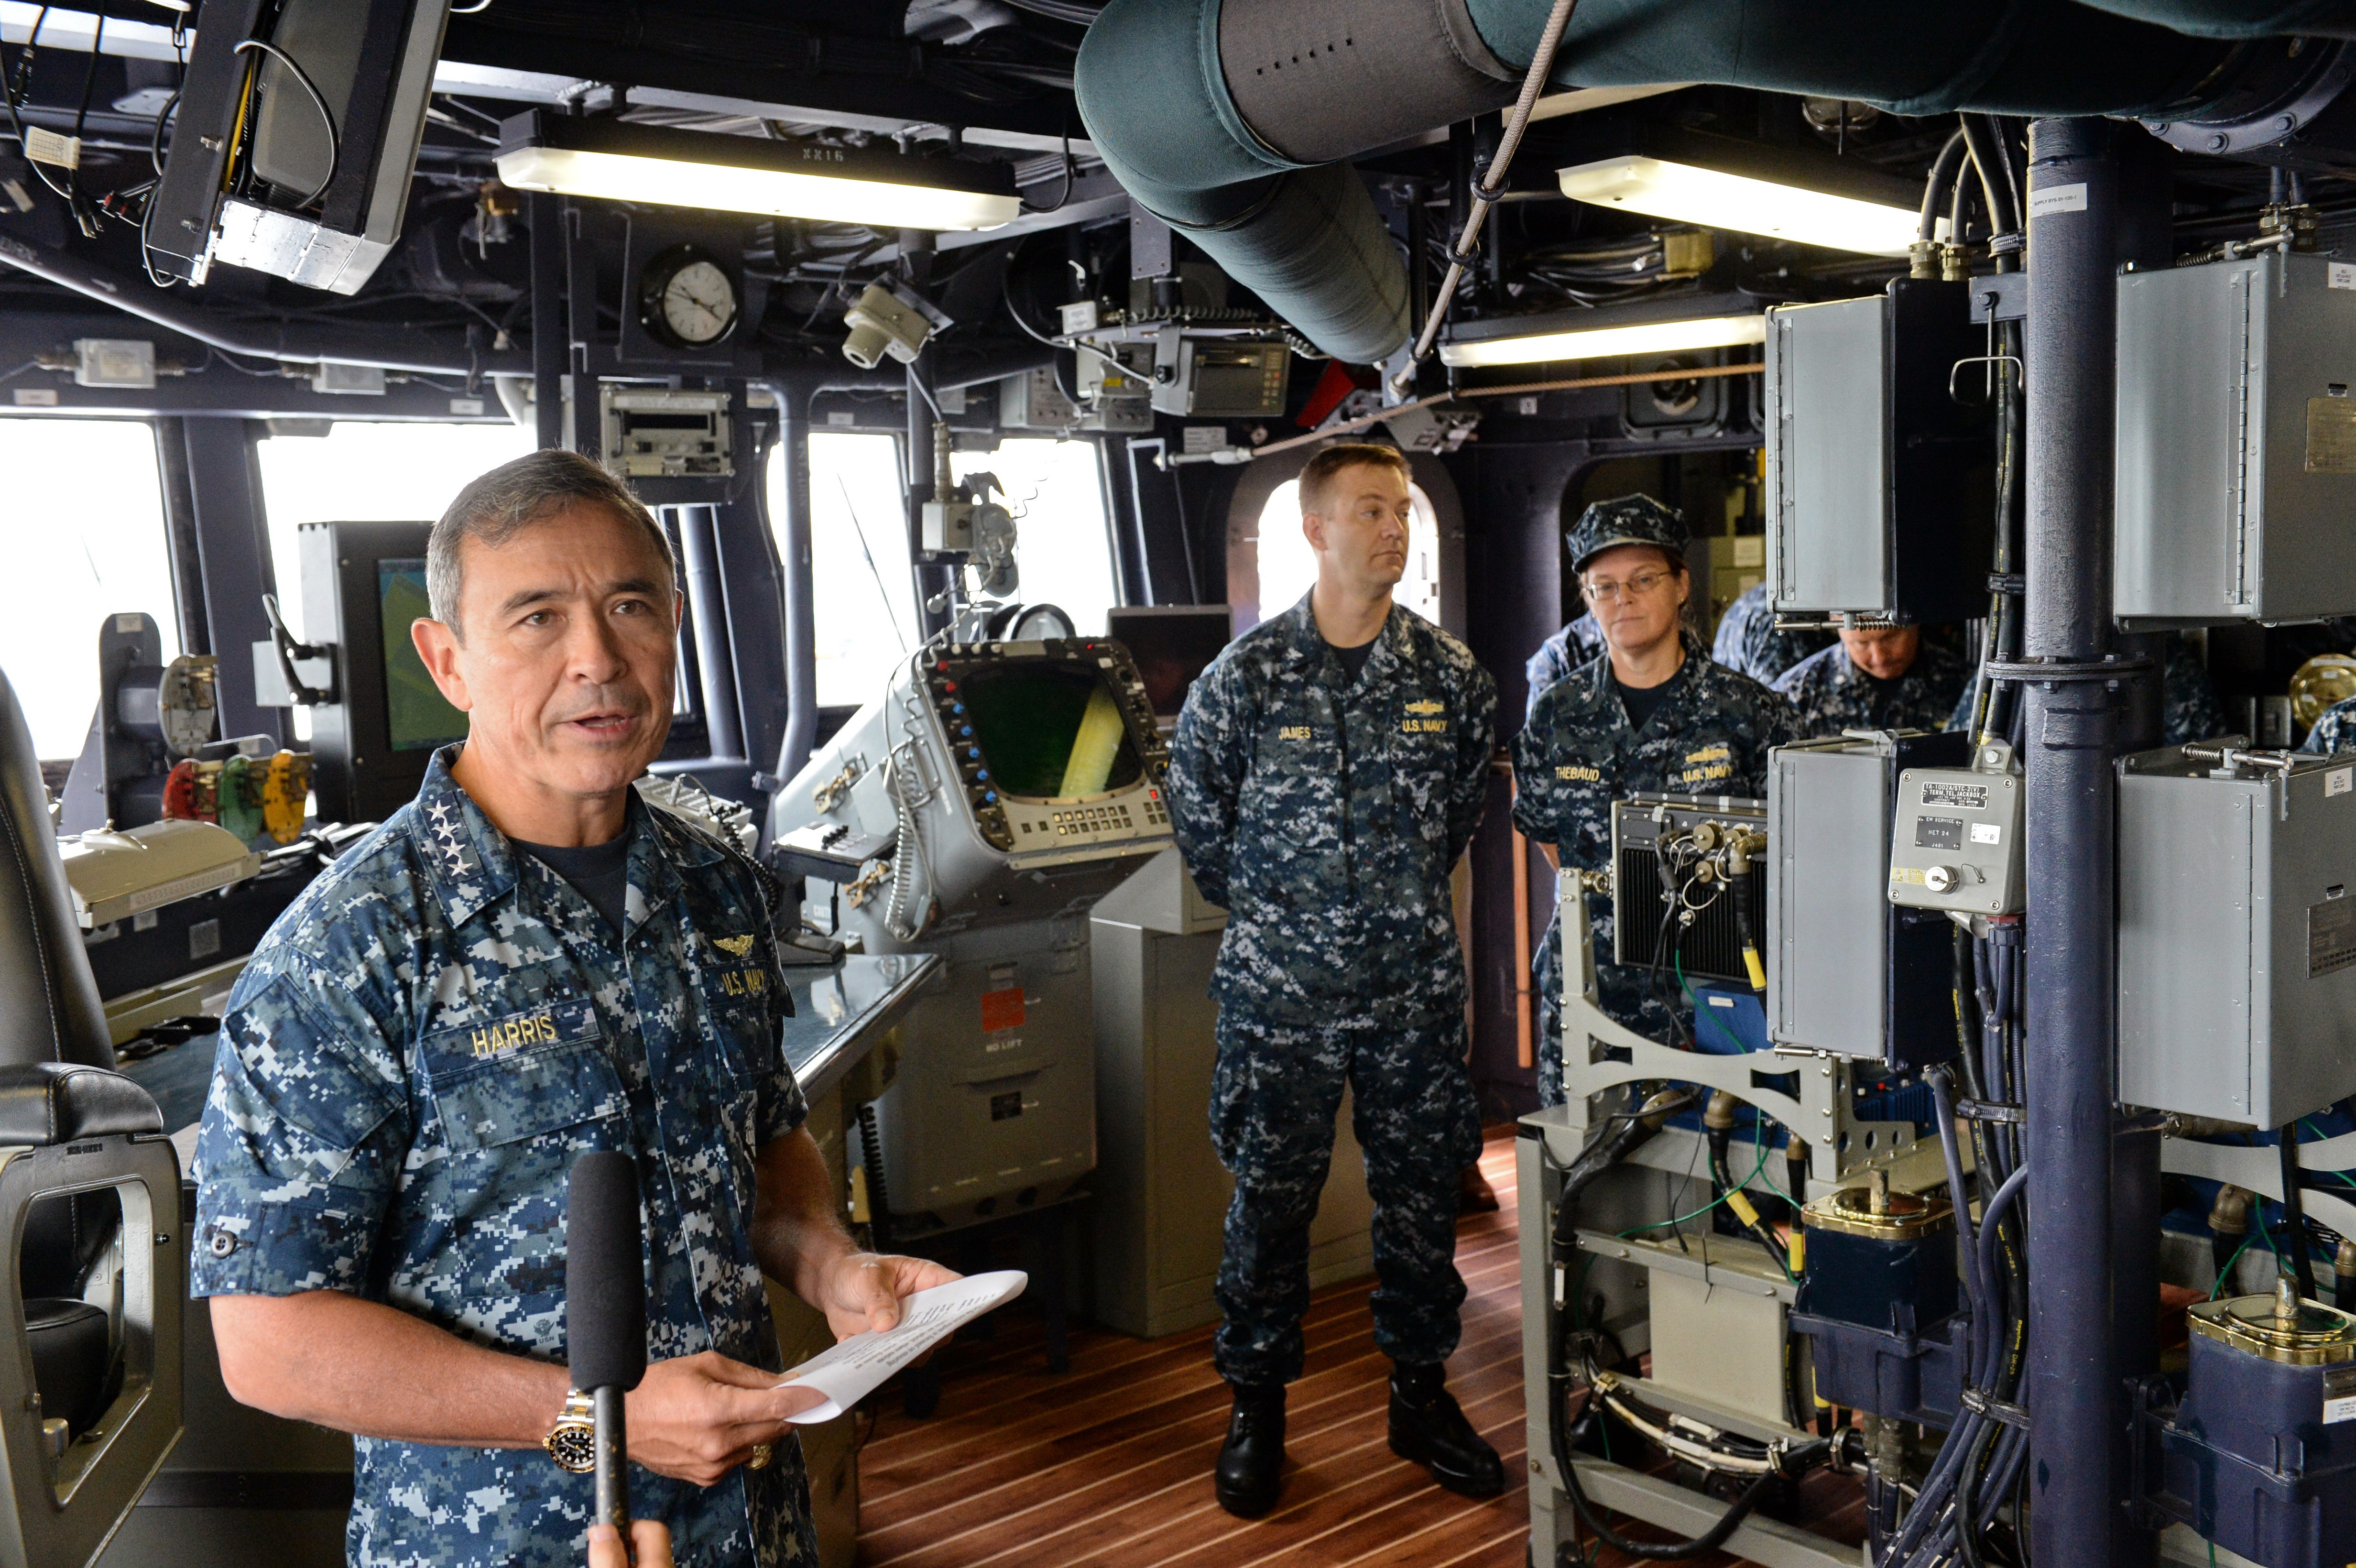 U.S. Navy's Pacific Fleet commander Admiral  Harry Harris, left, speaks to journalists during his visit to U.S.S. Spruance (DDG 111), Arleigh Burke–class guided-missile destroyer, docking in Sembawang wharves in Singapore on Jan. 22, 2014